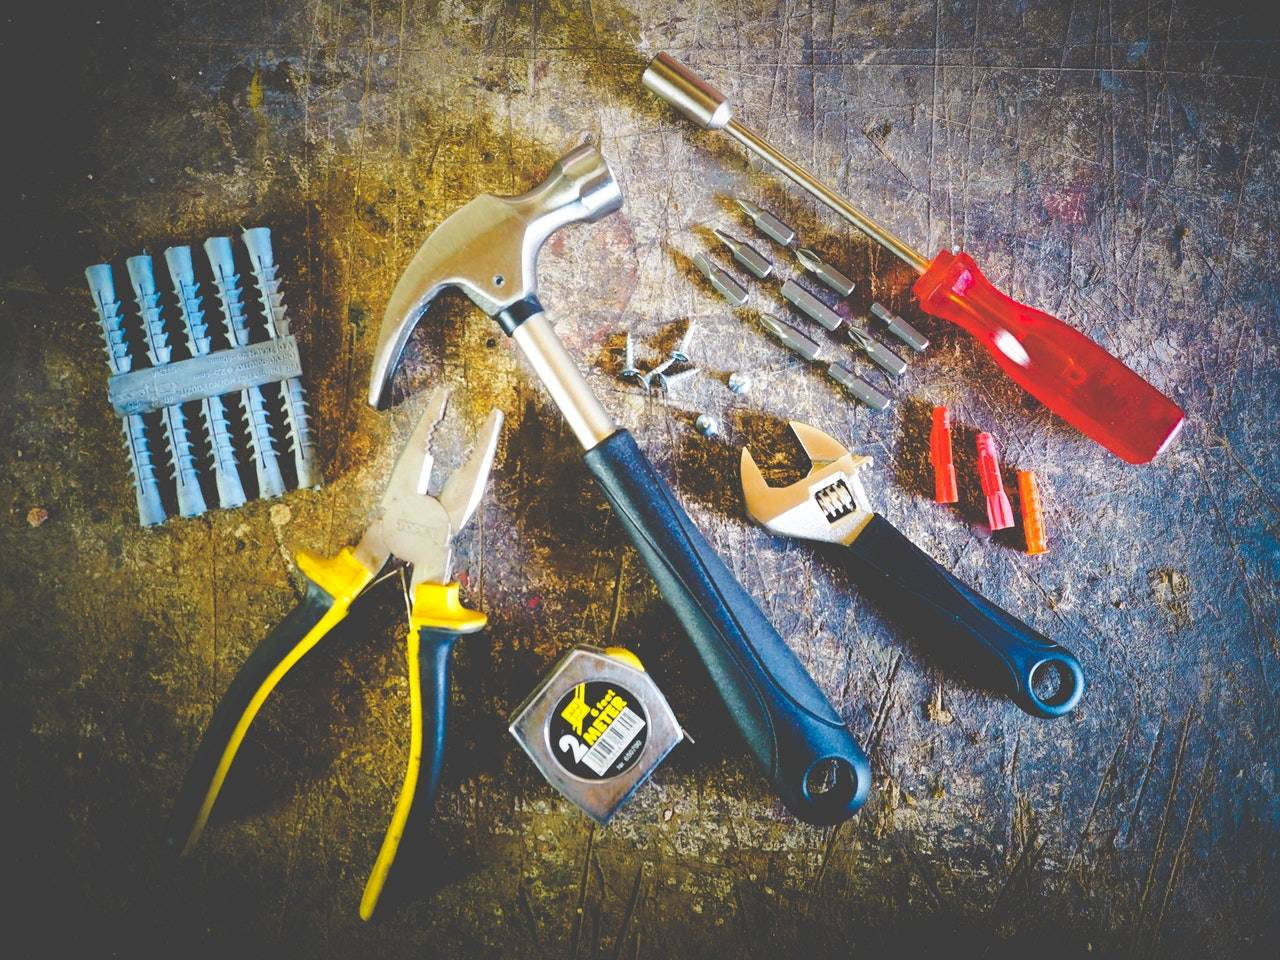 tox, pliers, hammer, wrench, tape measure, screwdriver